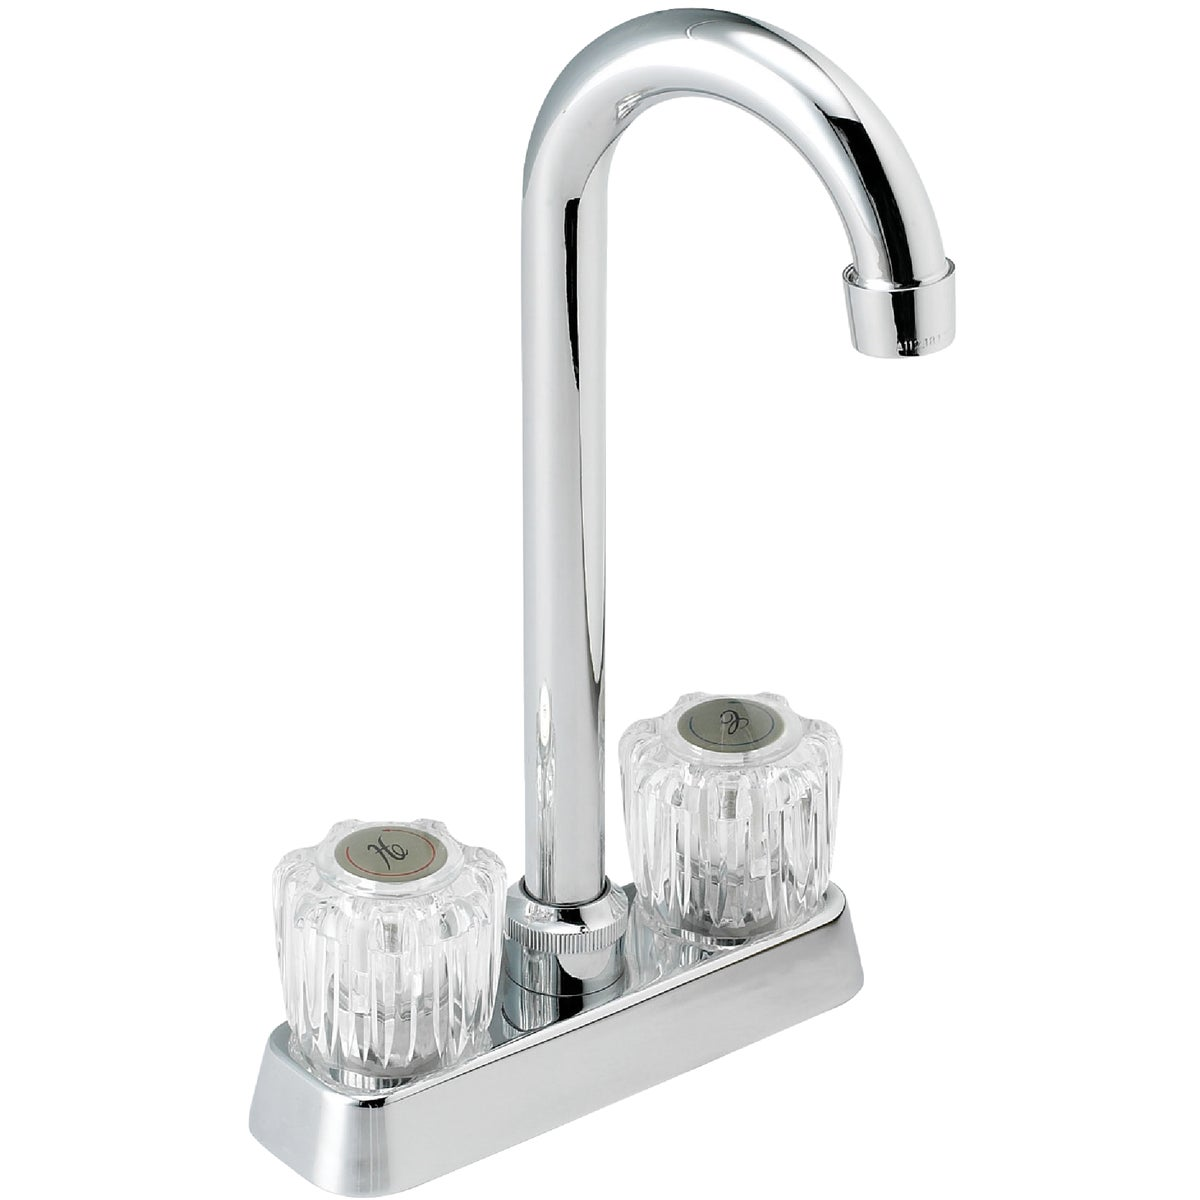 CHR BAR FAUCET - F5111011CP-JPA3 by Globe Union